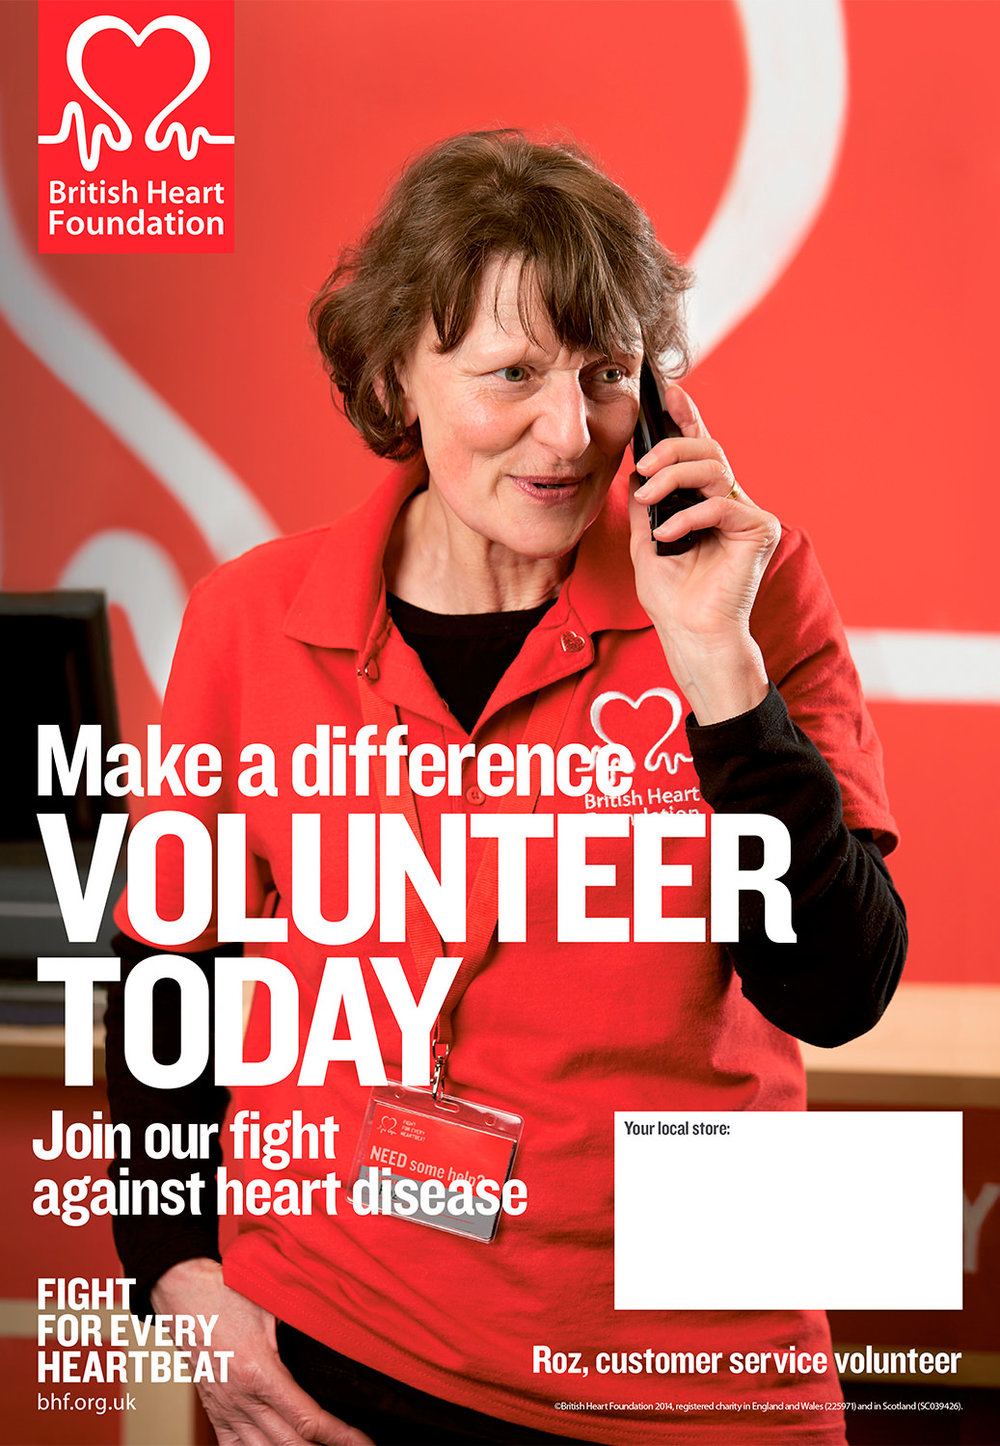 British Heart Foundation Volunteering Campaign